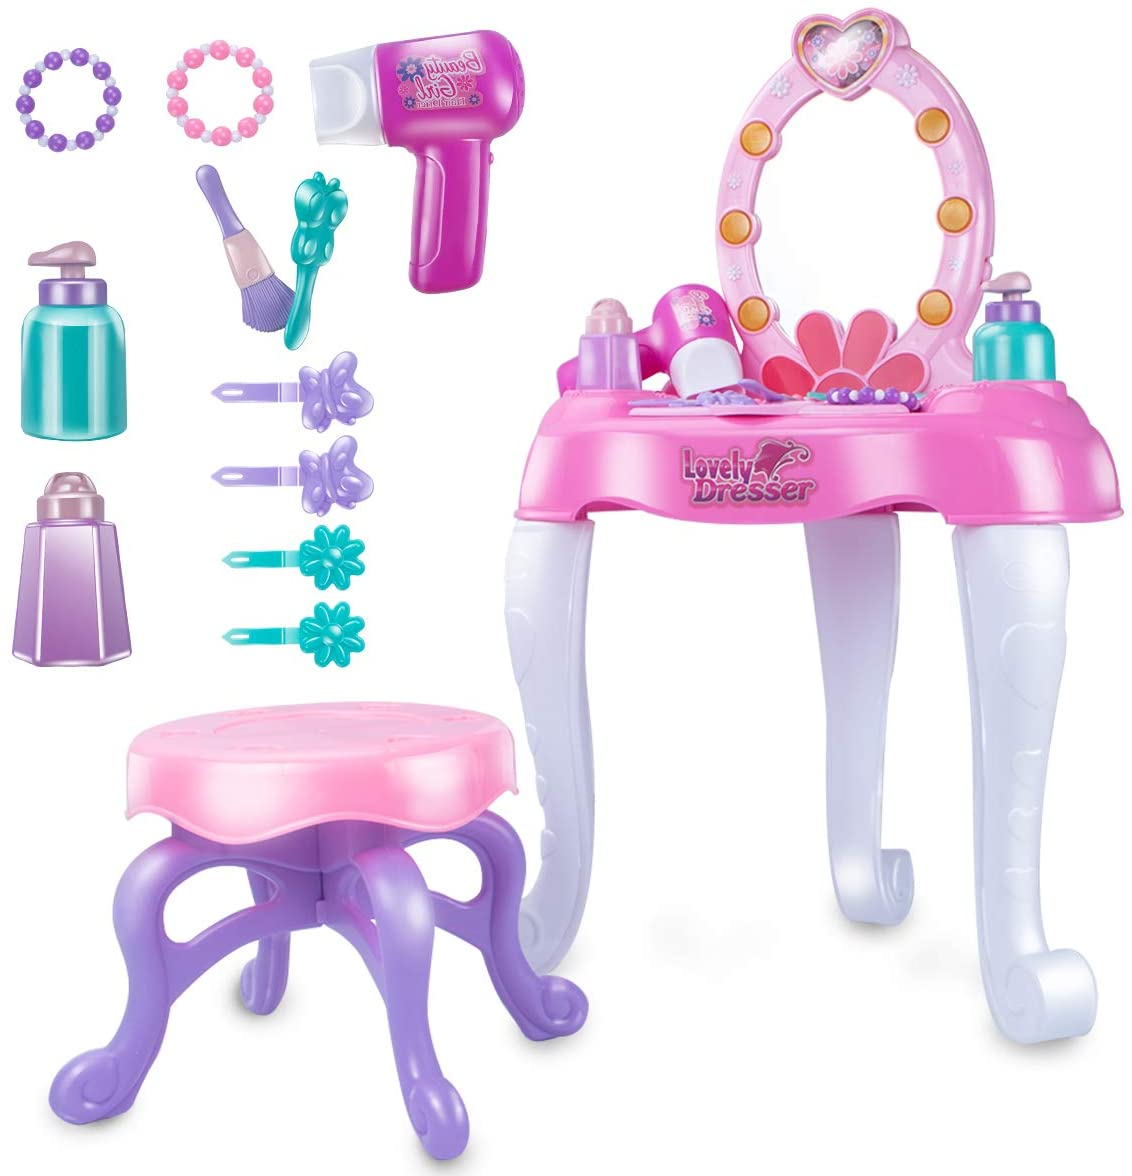 UNIH Girls Vanity Table Toy to Pretend Makeup with Mirror Chair Set for Toddler Kids Little Girls Pink Makeup Kits Toys for 2 3 4 5 Year Old Girl